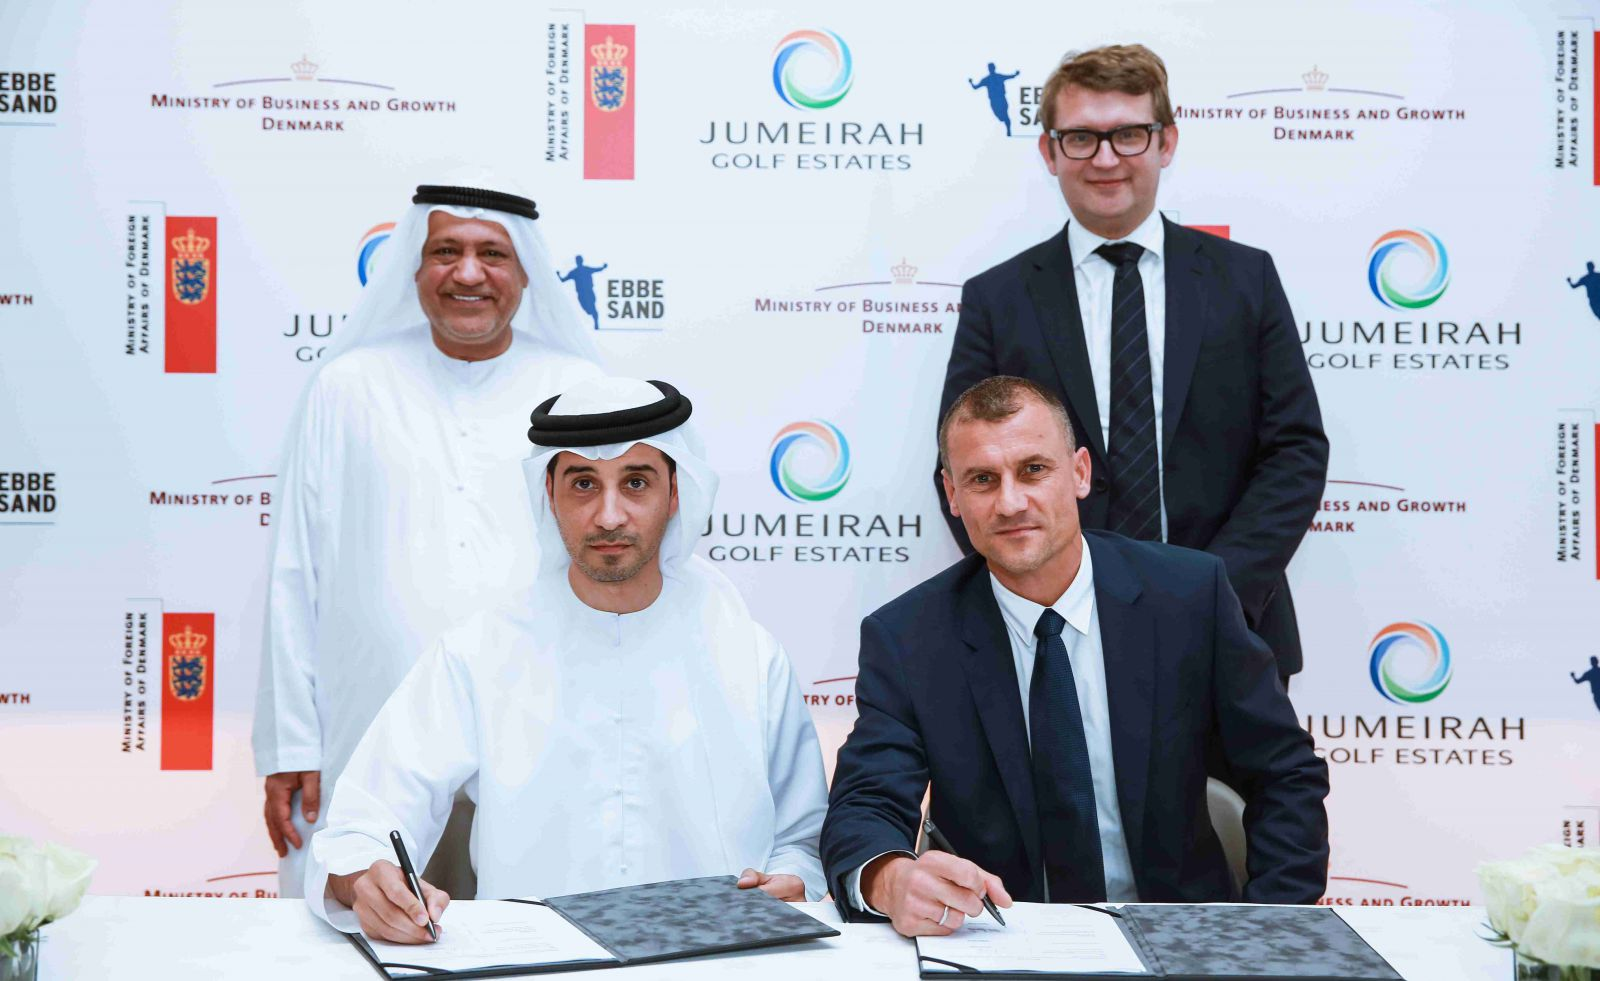 World's First Sustainable Sports Hub by Ebbe Sand to be developed at Jumeirah Golf Estates